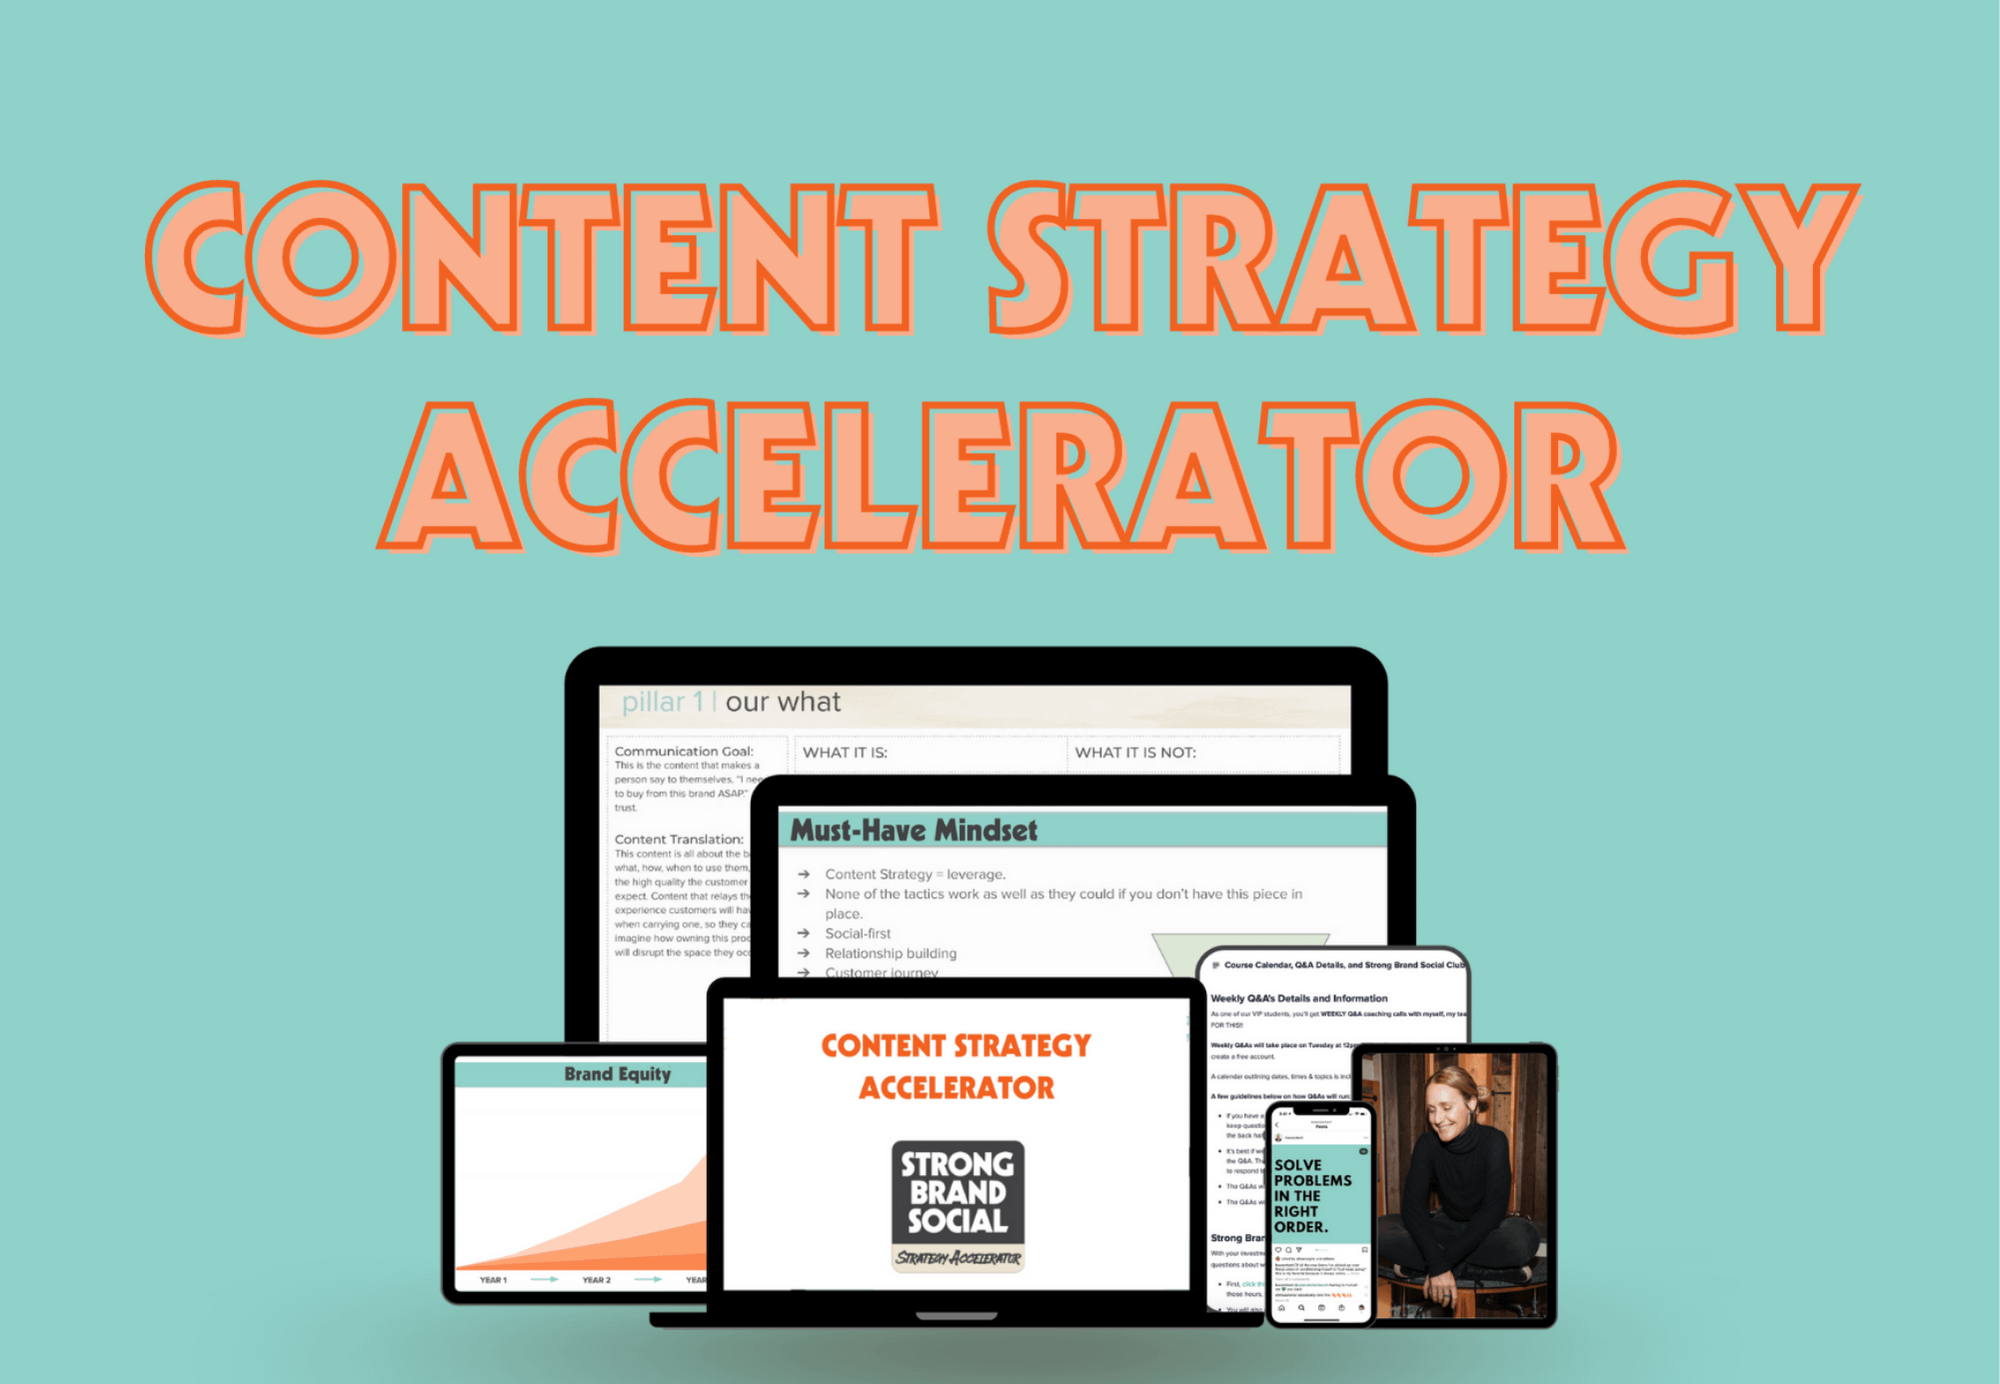 Content Strategy Accelerator